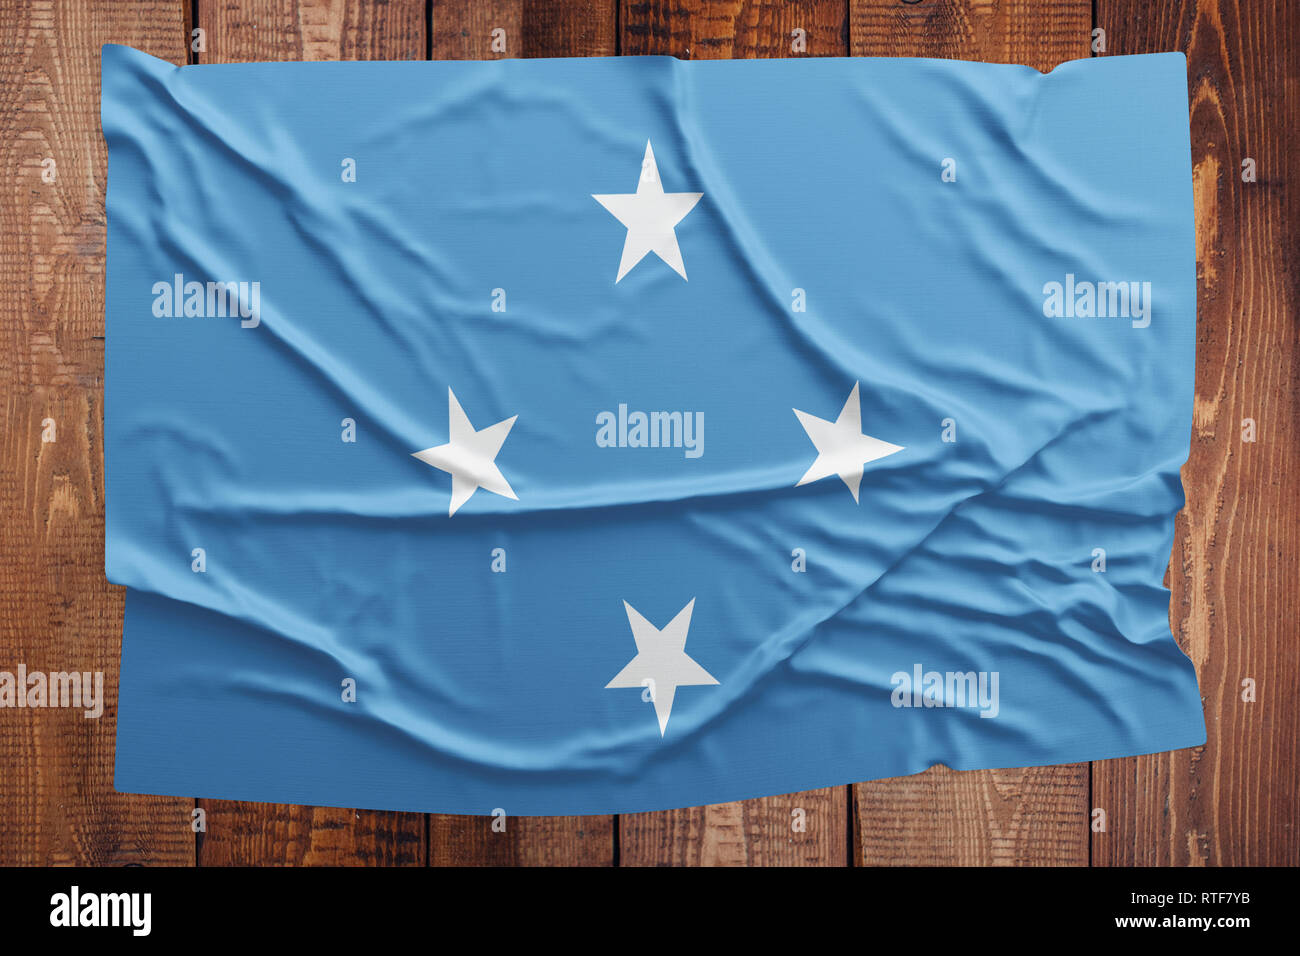 Flag of Micronesia on a wooden table background. Wrinkled Micronesian flag top view. - Stock Image